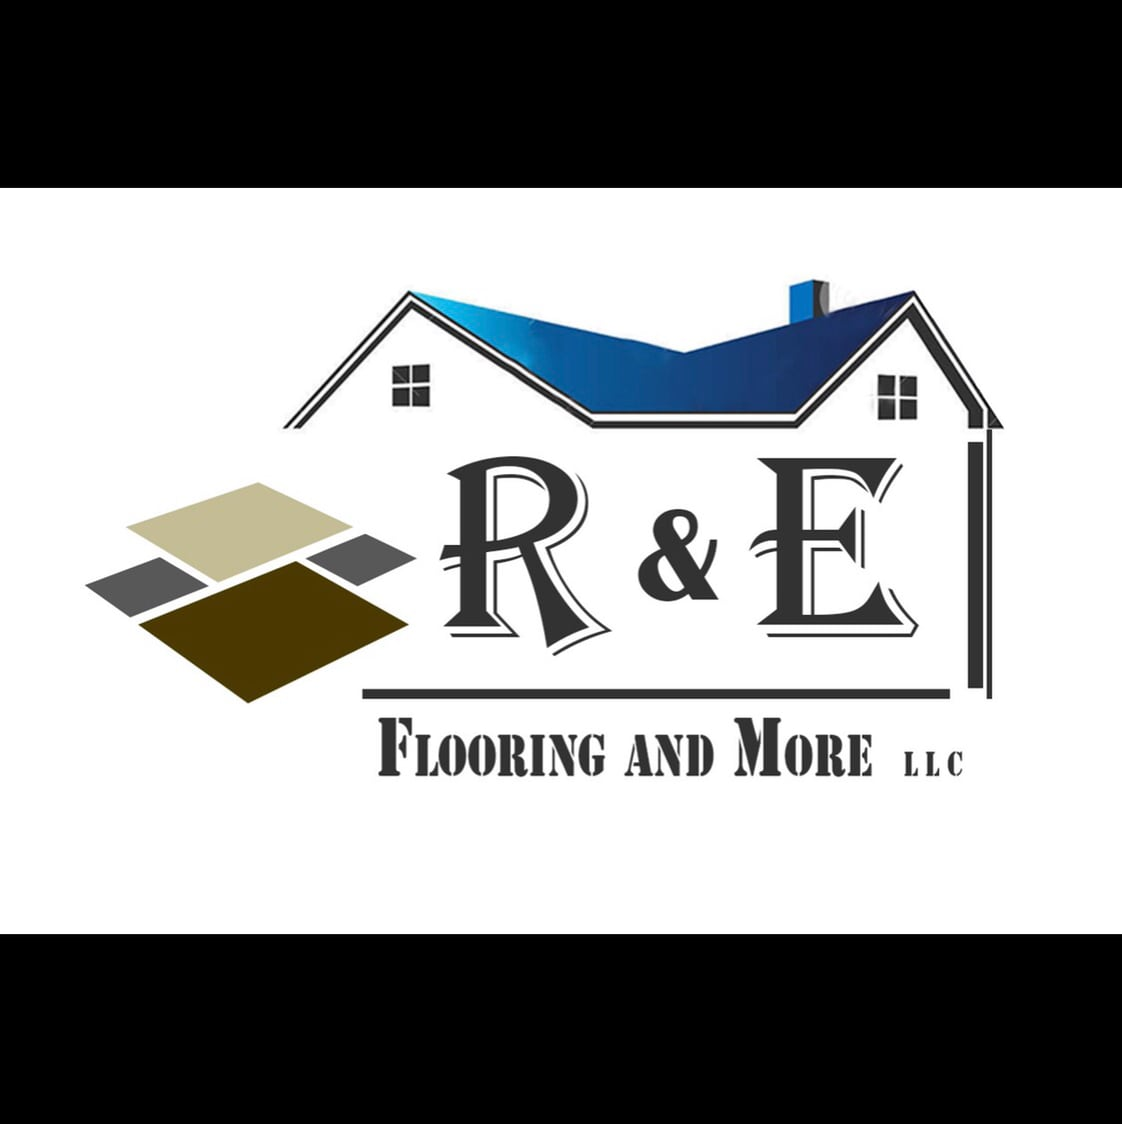 R&E flooring and more